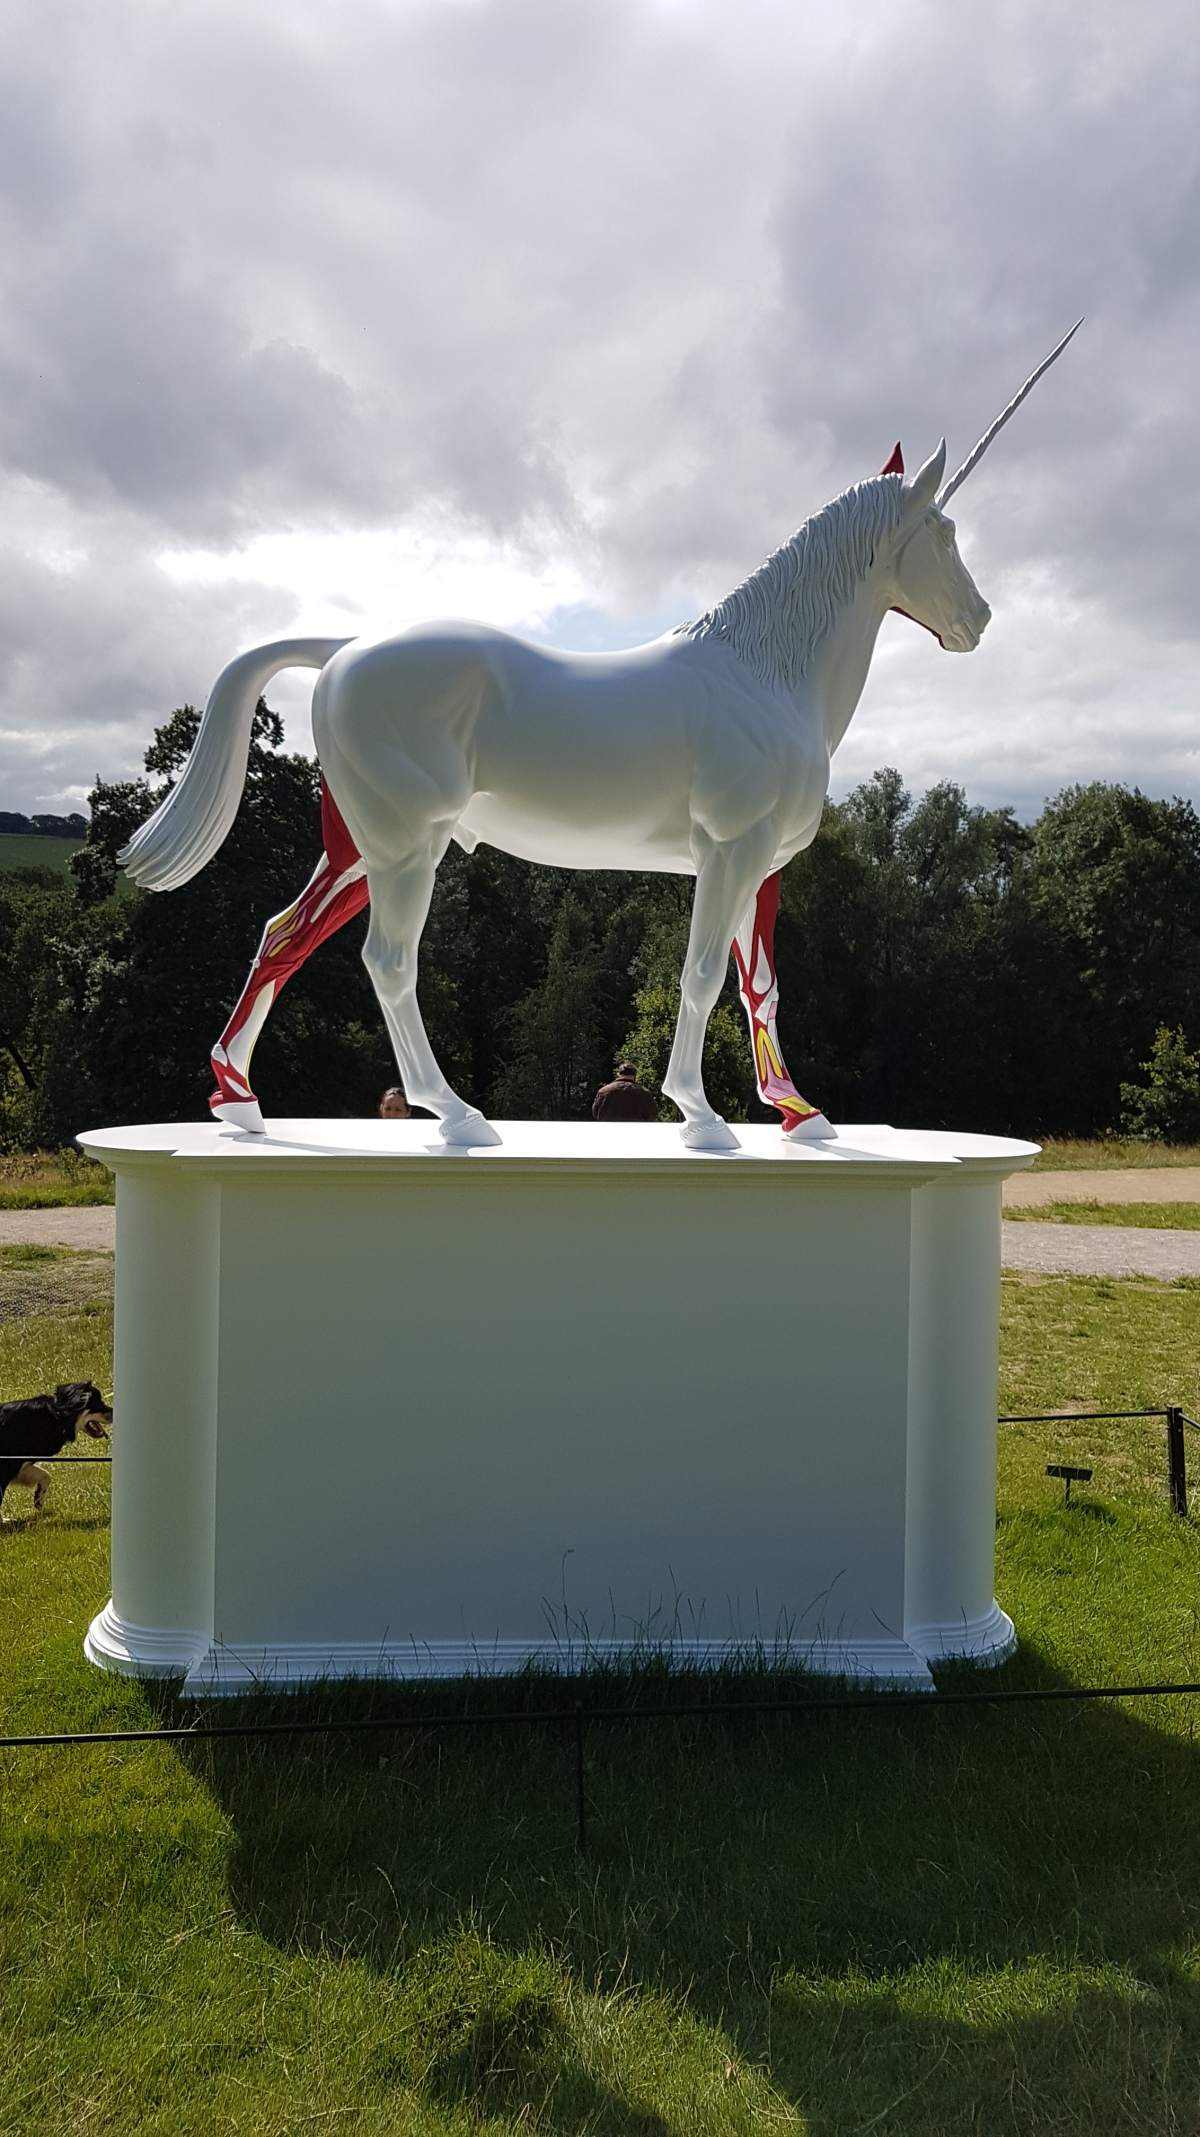 Unicorn in a big park……..my kind of art!